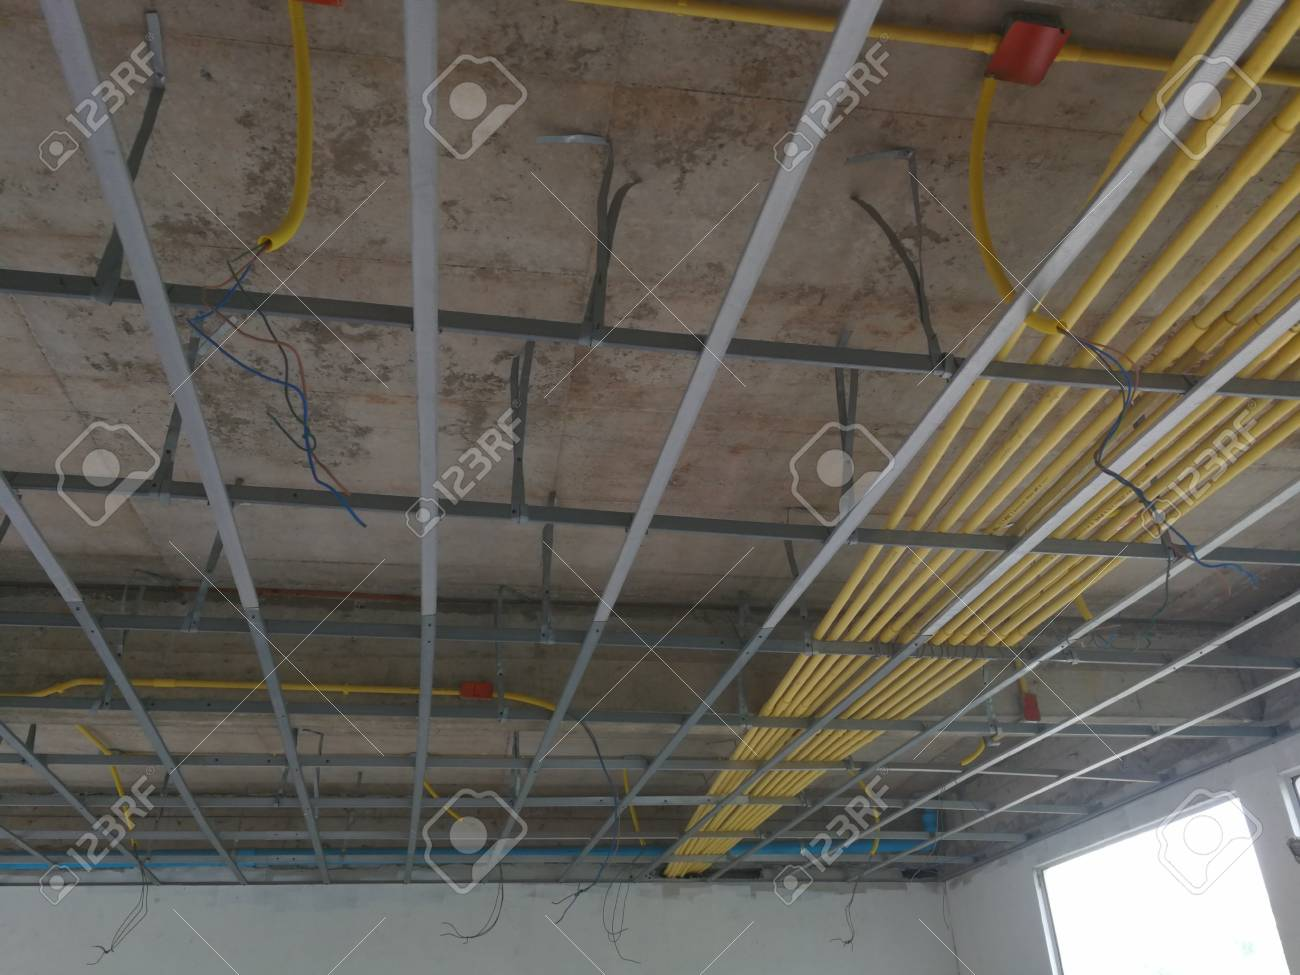 ceiling under construction and home wiring duct stock photo - 84706154